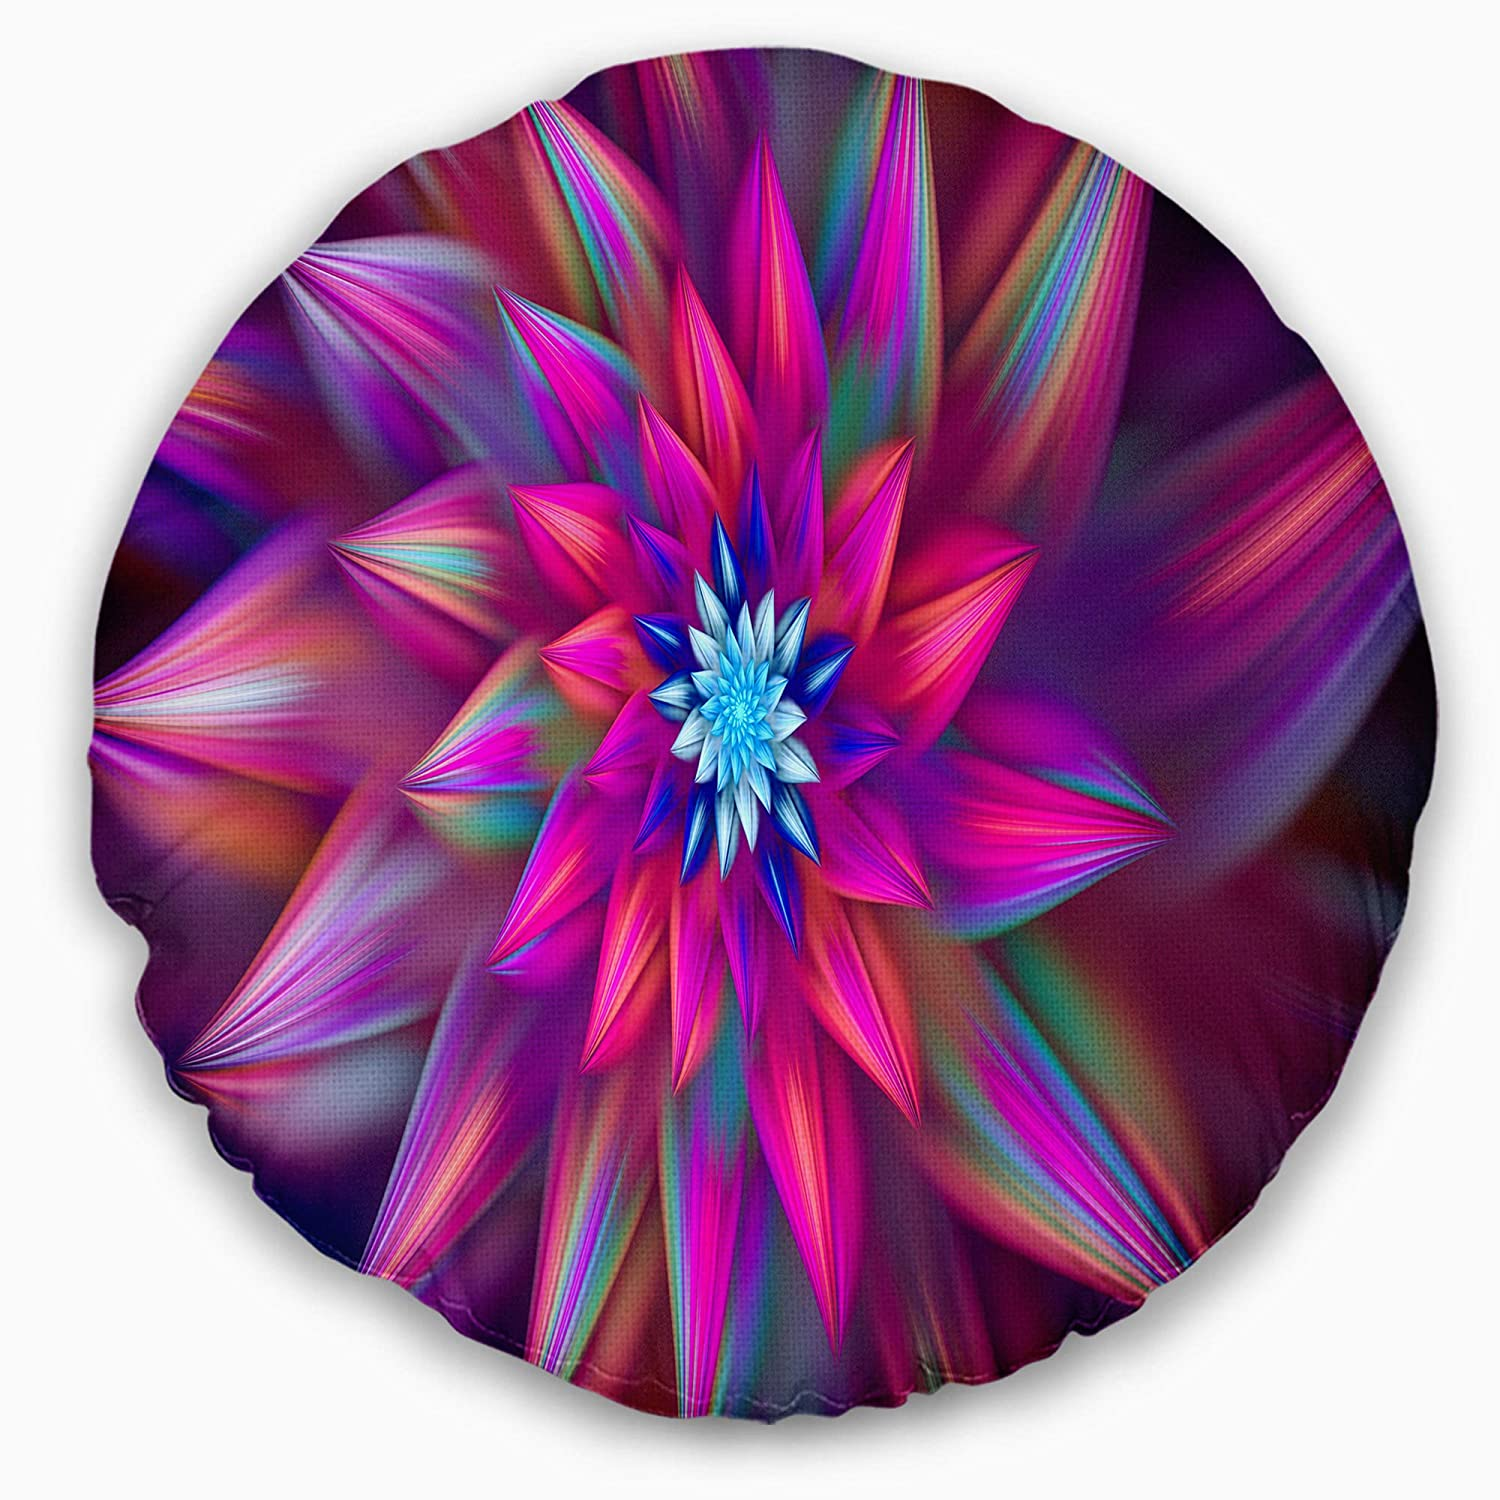 Designart CU15639-20-20-C Huge Purple Pink Fractal Flower' Floral Round Cushion Cover for Living Room, Sofa Throw Pillow 20', Insert Printed On Both Side